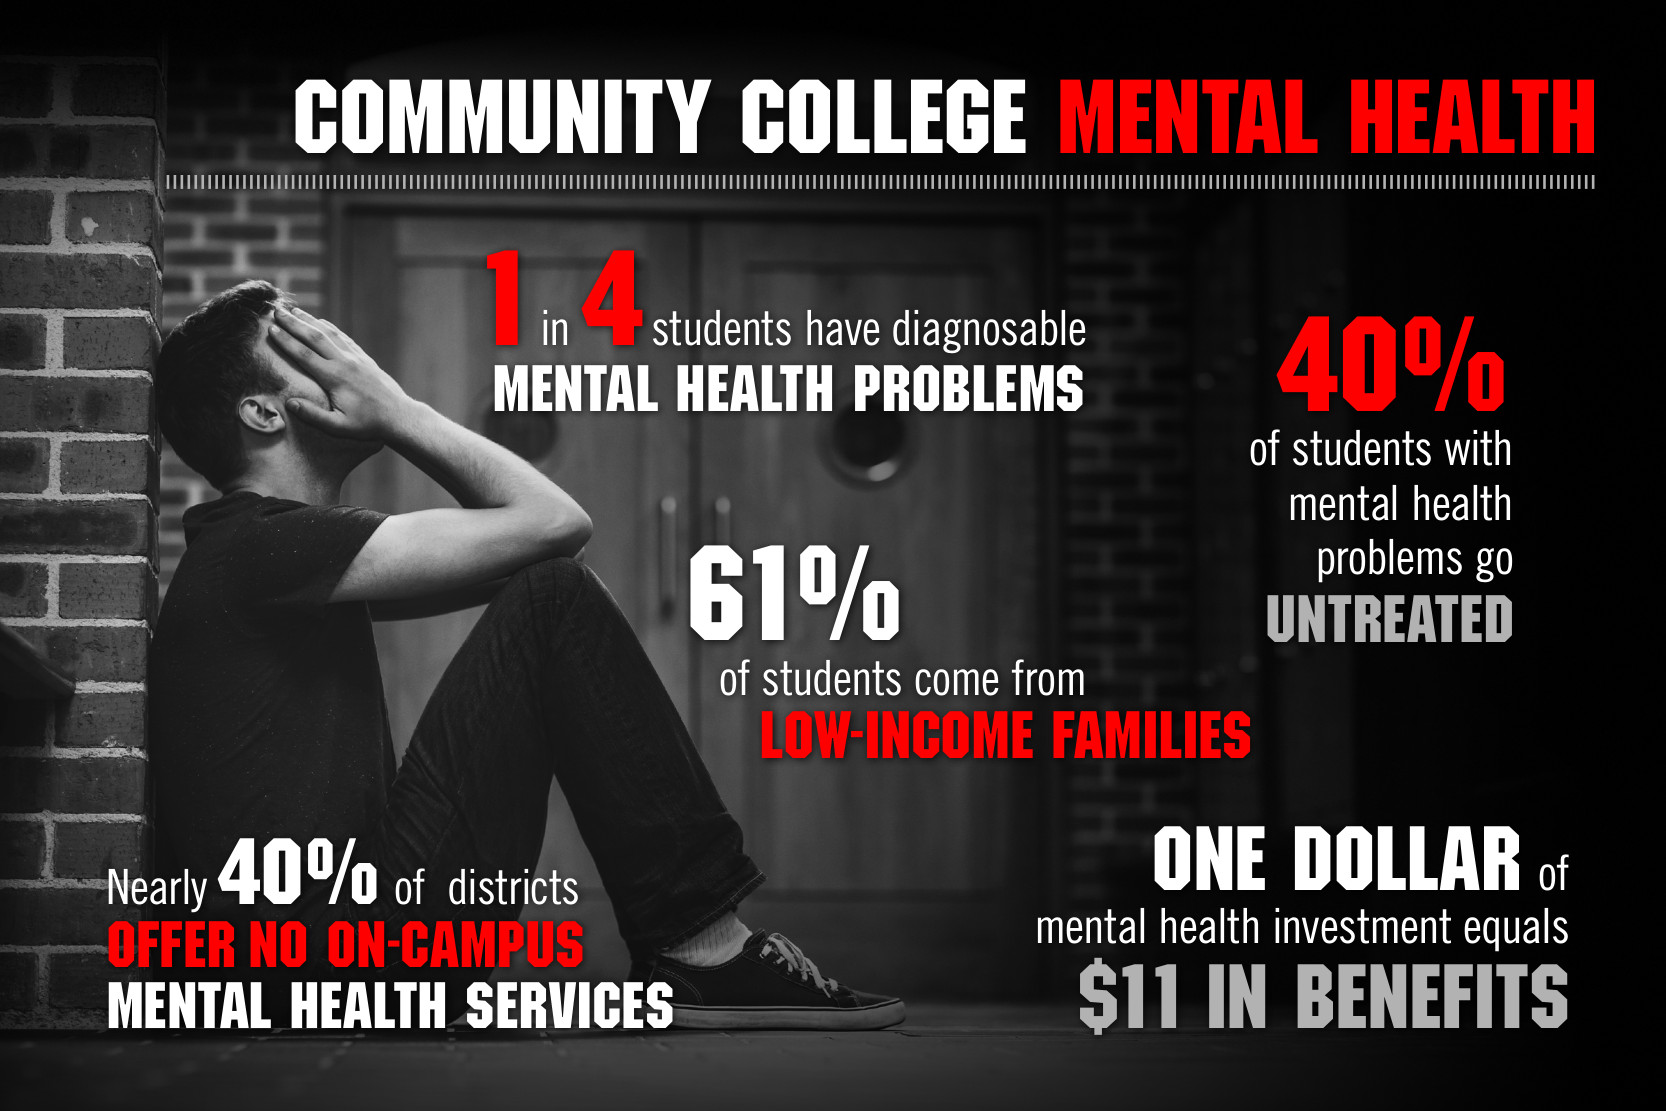 Uncovered California: Community College Students' Quest for Mental Health  Services | Capital & Main